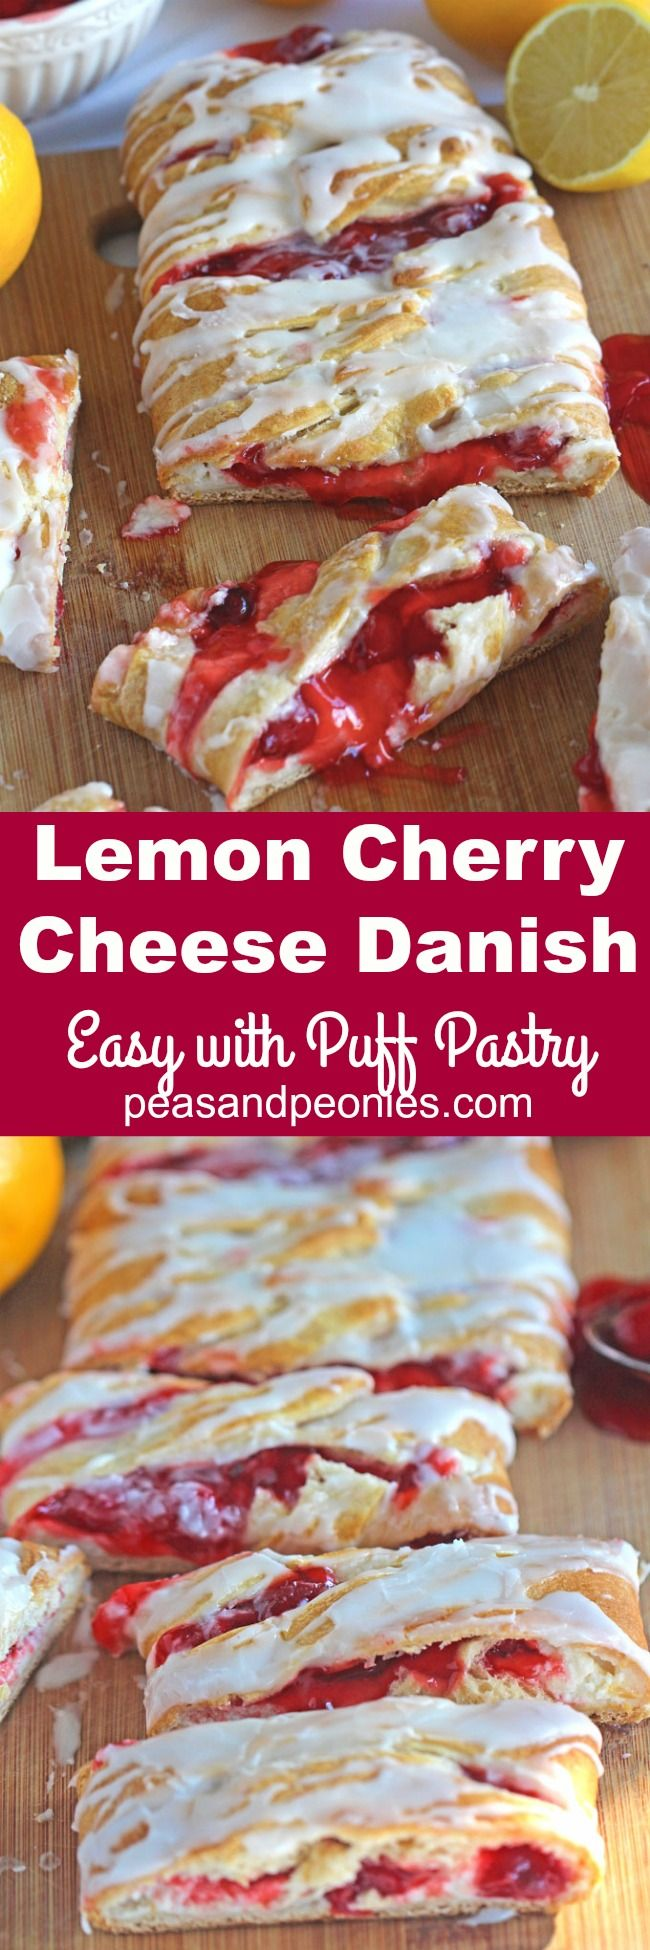 Lemon Cherry Cheese Danish Recipe is very easy to make with puff pastry, ready in 30 minutes, with delicious lemon and cherry flavors!